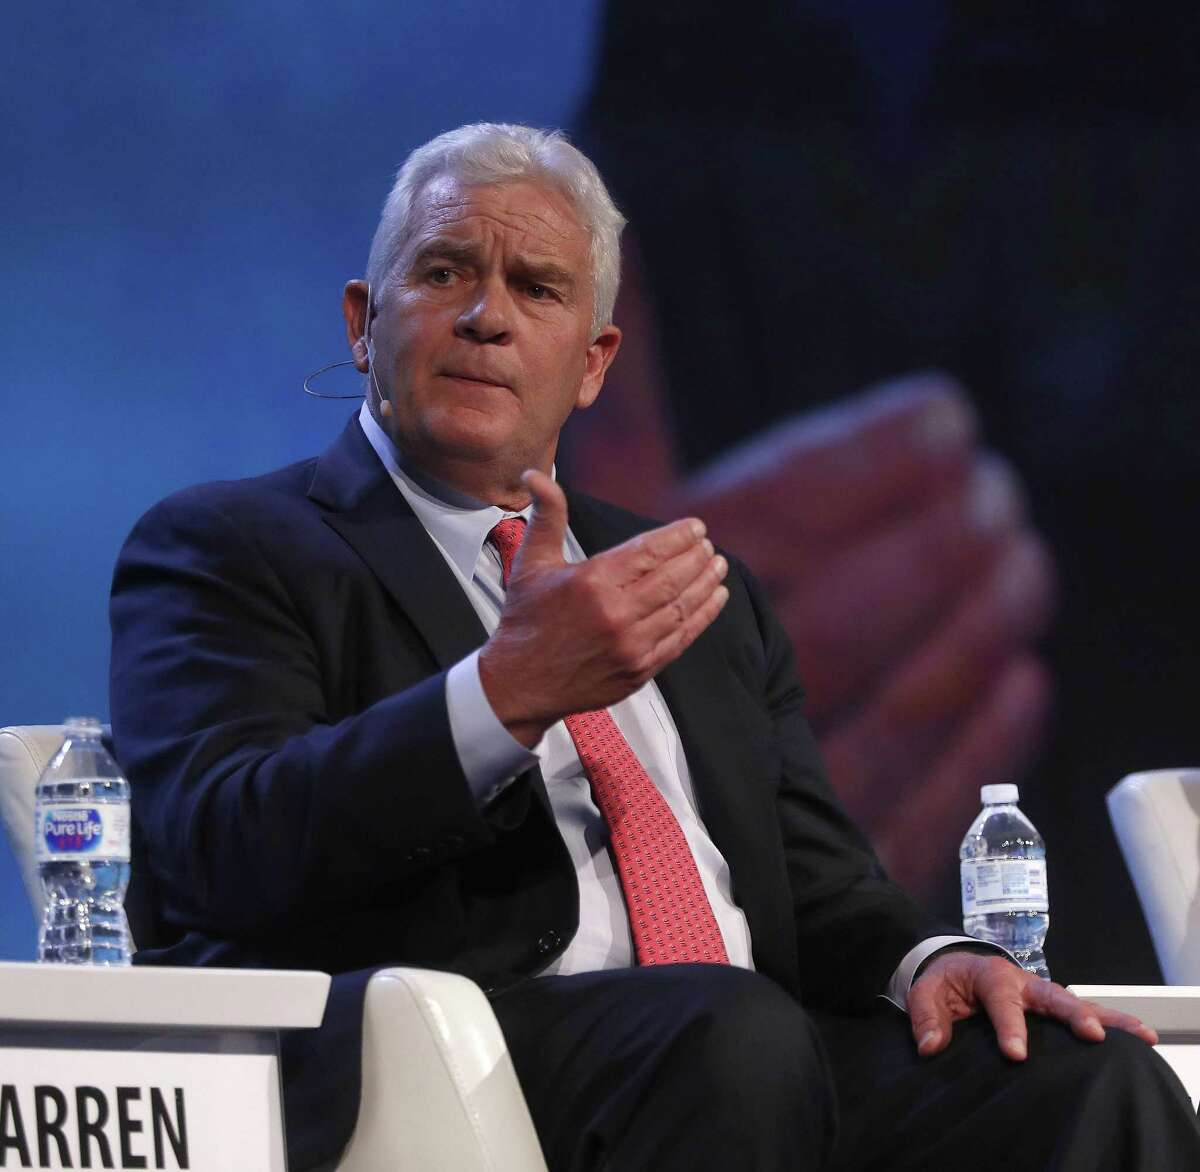 Warren, whose own Energy Transfer Equity and Energy Transfer Partners own and operate a network of crude oil and natural gas pipelines, wanted to pay a 30 percent premium for NuStar GP Holdings. The offer was rejected.